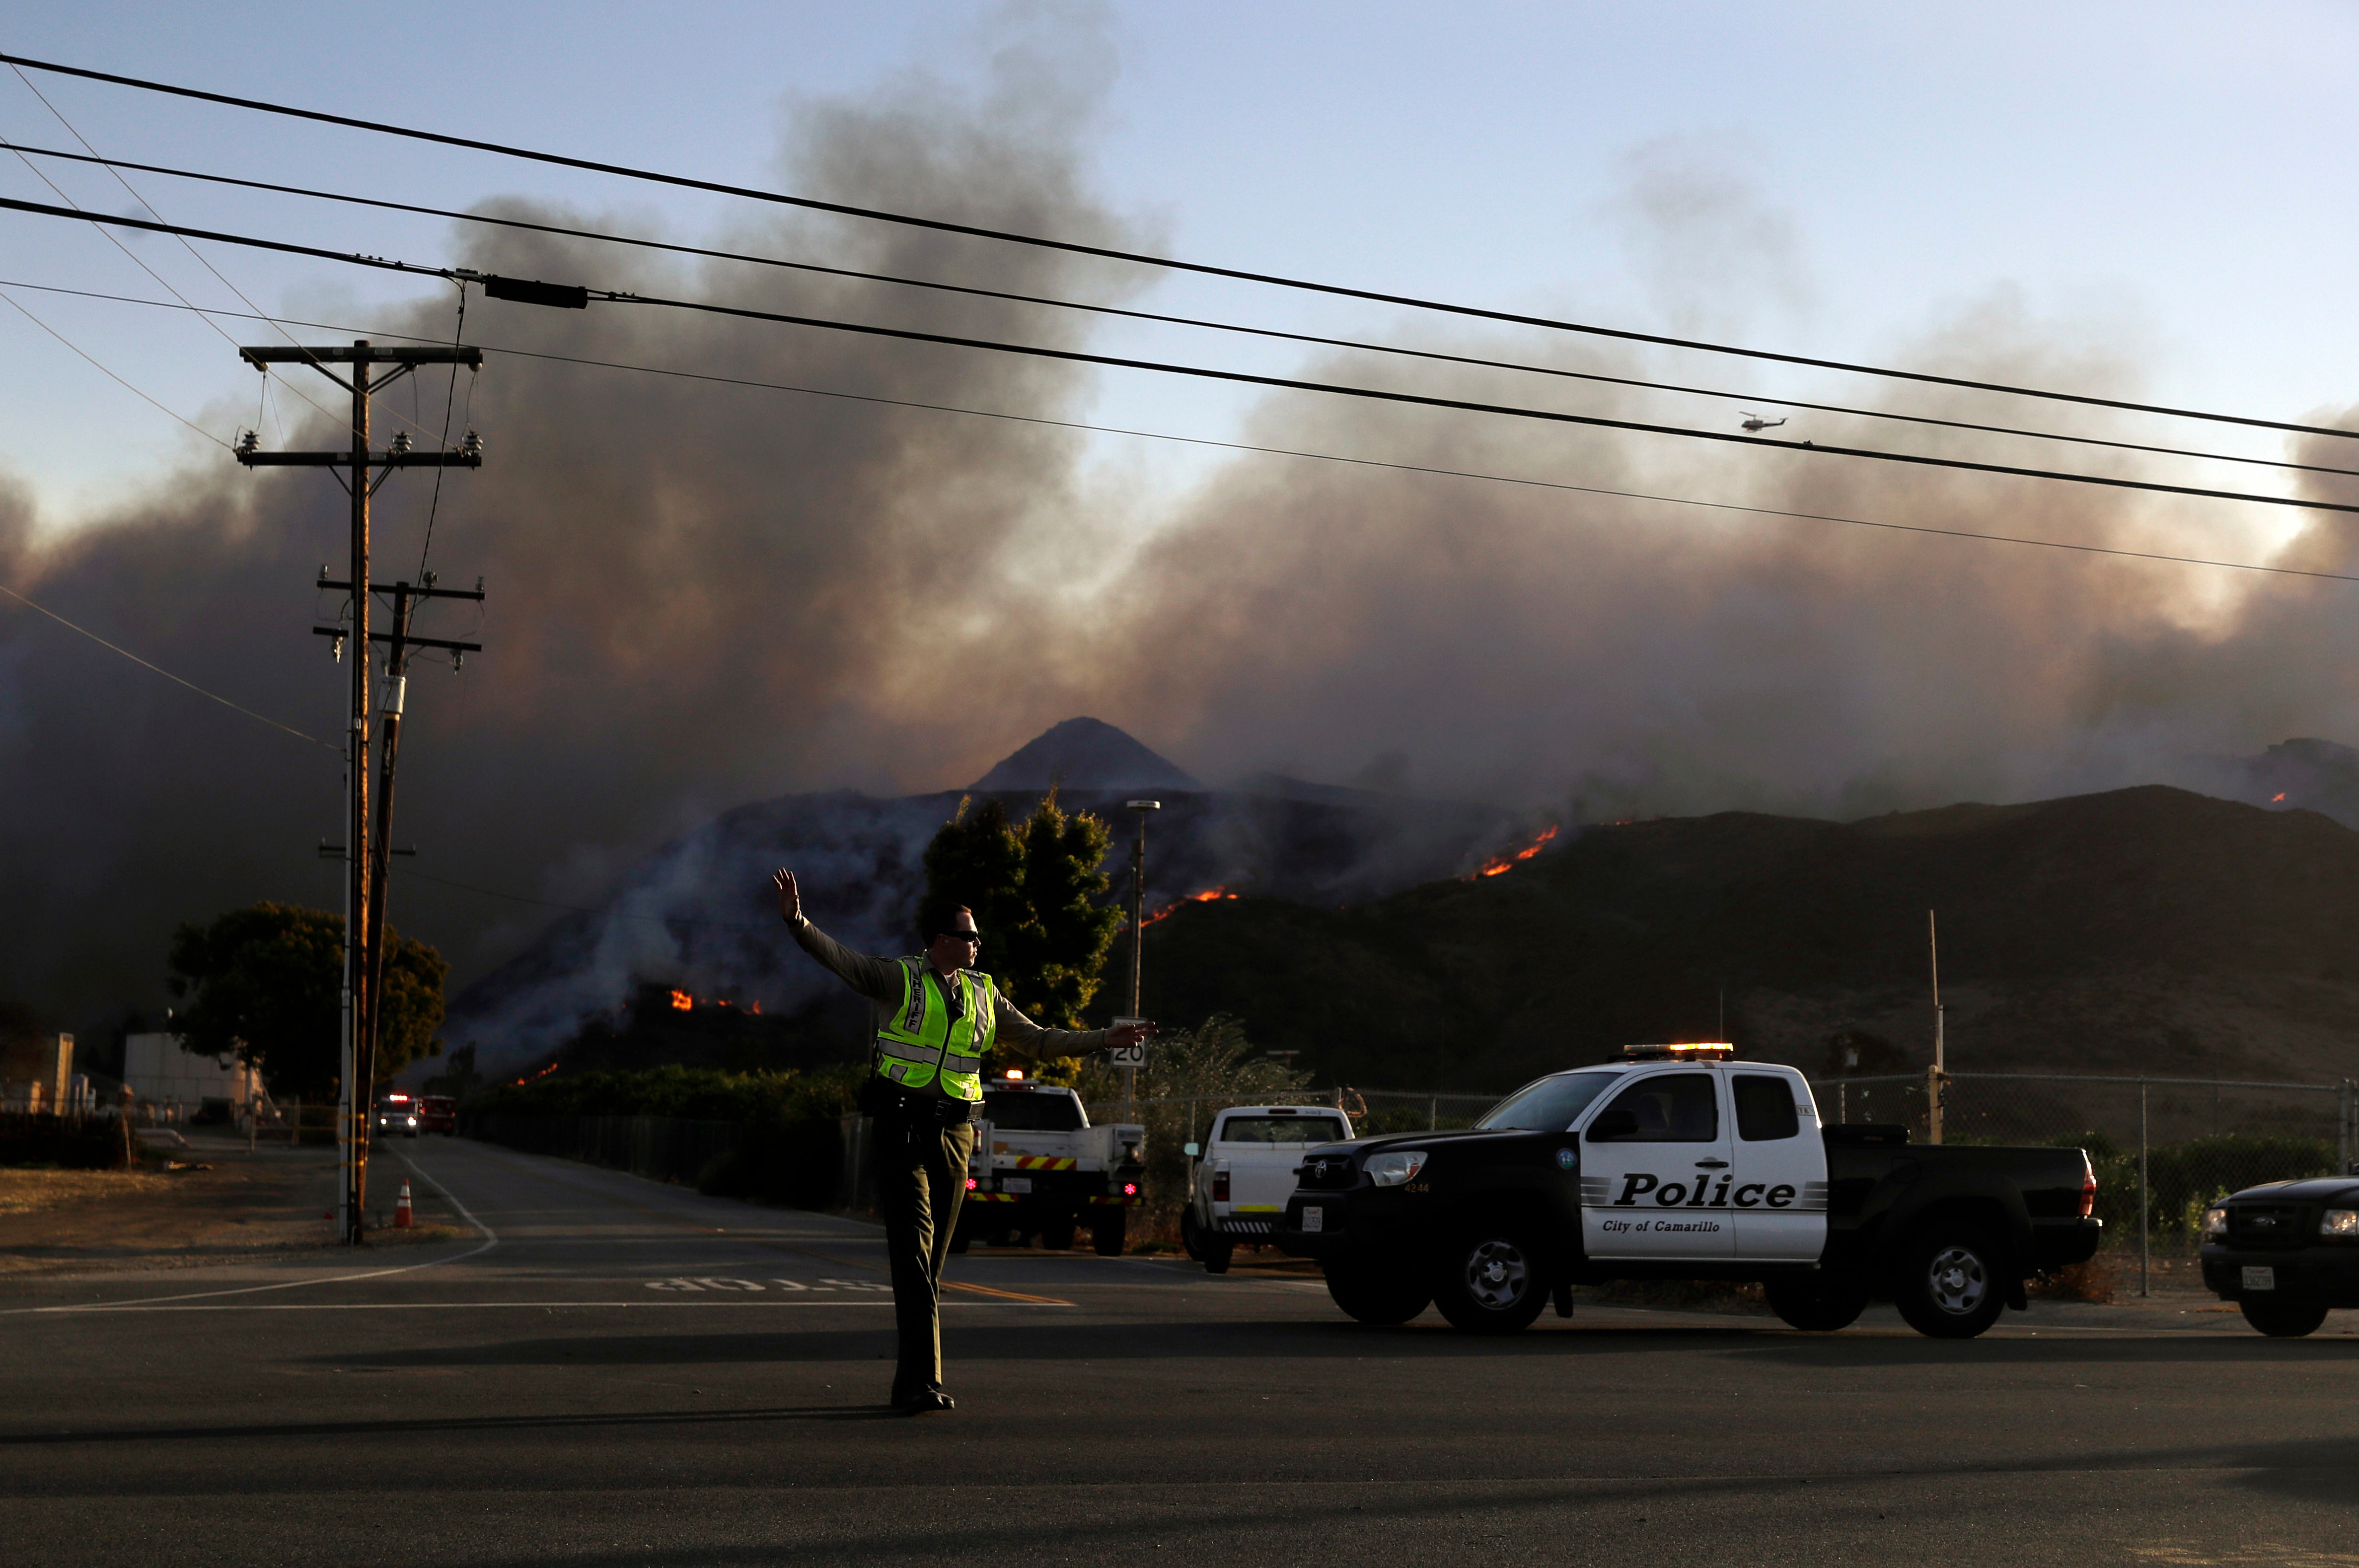 A police officer mans a checkpoint in front of an advancing wildfire, near Newbury Park, Calif. onNov. 9, 2018. The Ventura County Fire Department has also ordered evacuation of some communities in the path of the fire, which erupted a few miles from the site of Wednesday night's deadly mass shooting at a Thousand Oaks bar.